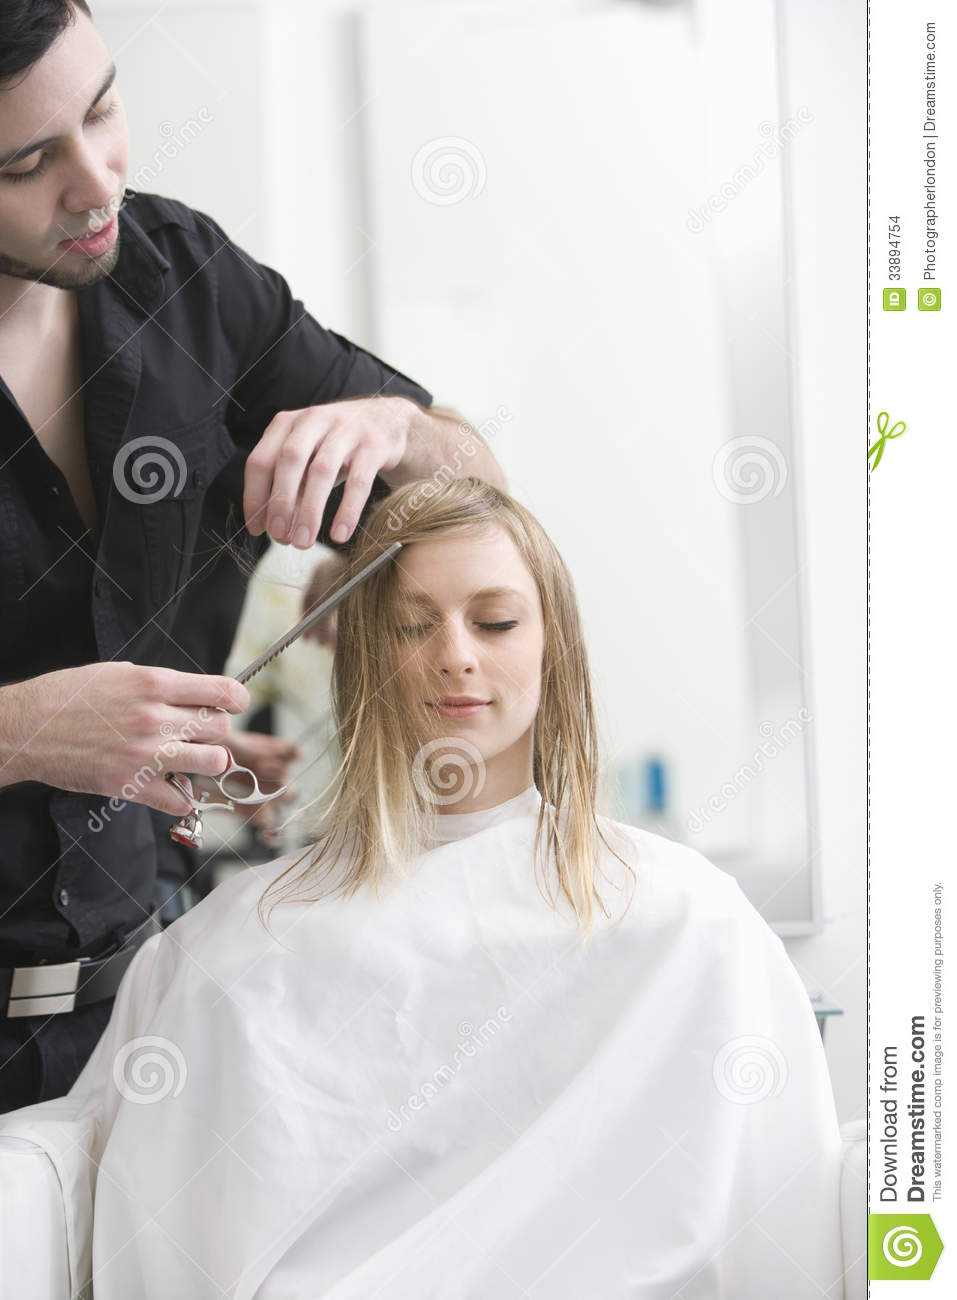 Image Result For Men Haircut Salon